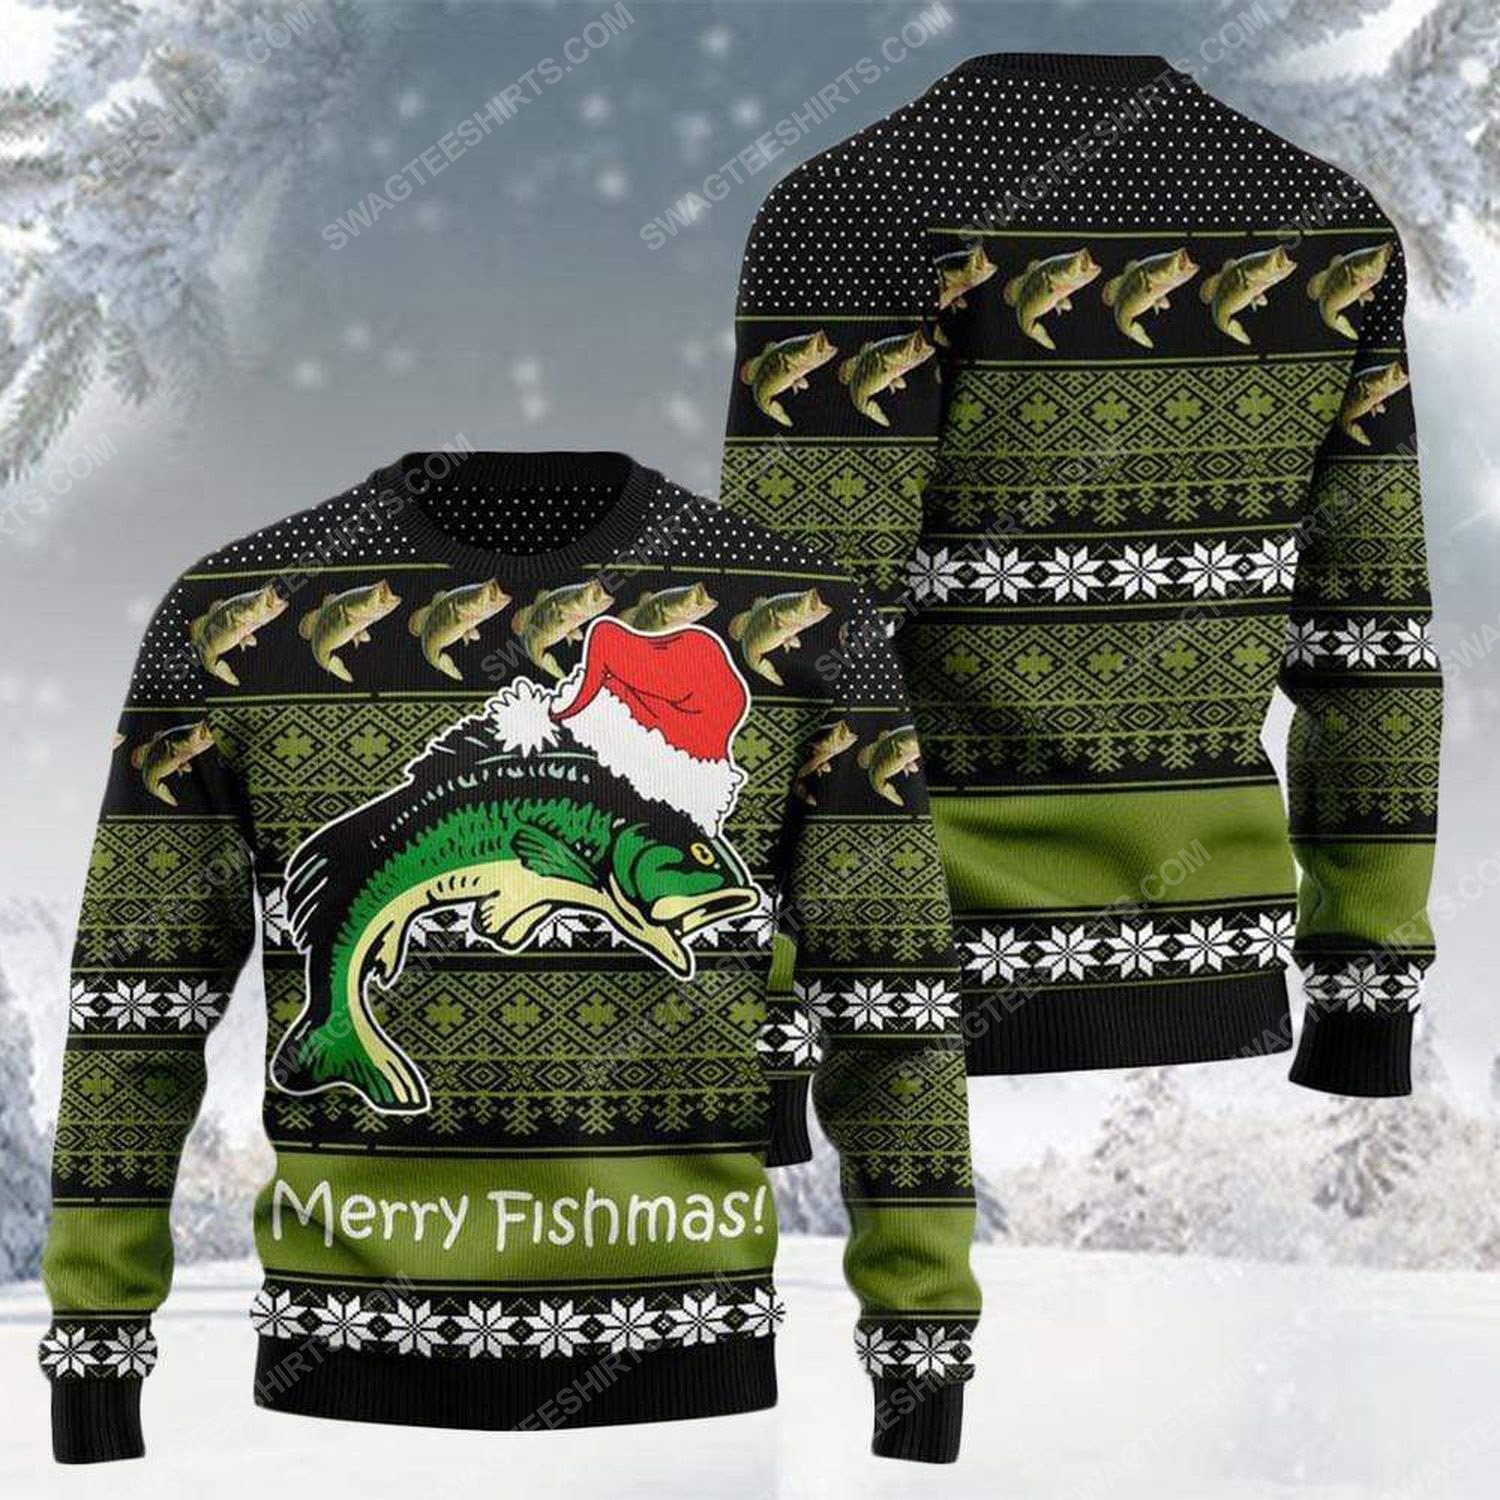 Merry fishmas for fishing all over print ugly christmas sweater 2 - Copy